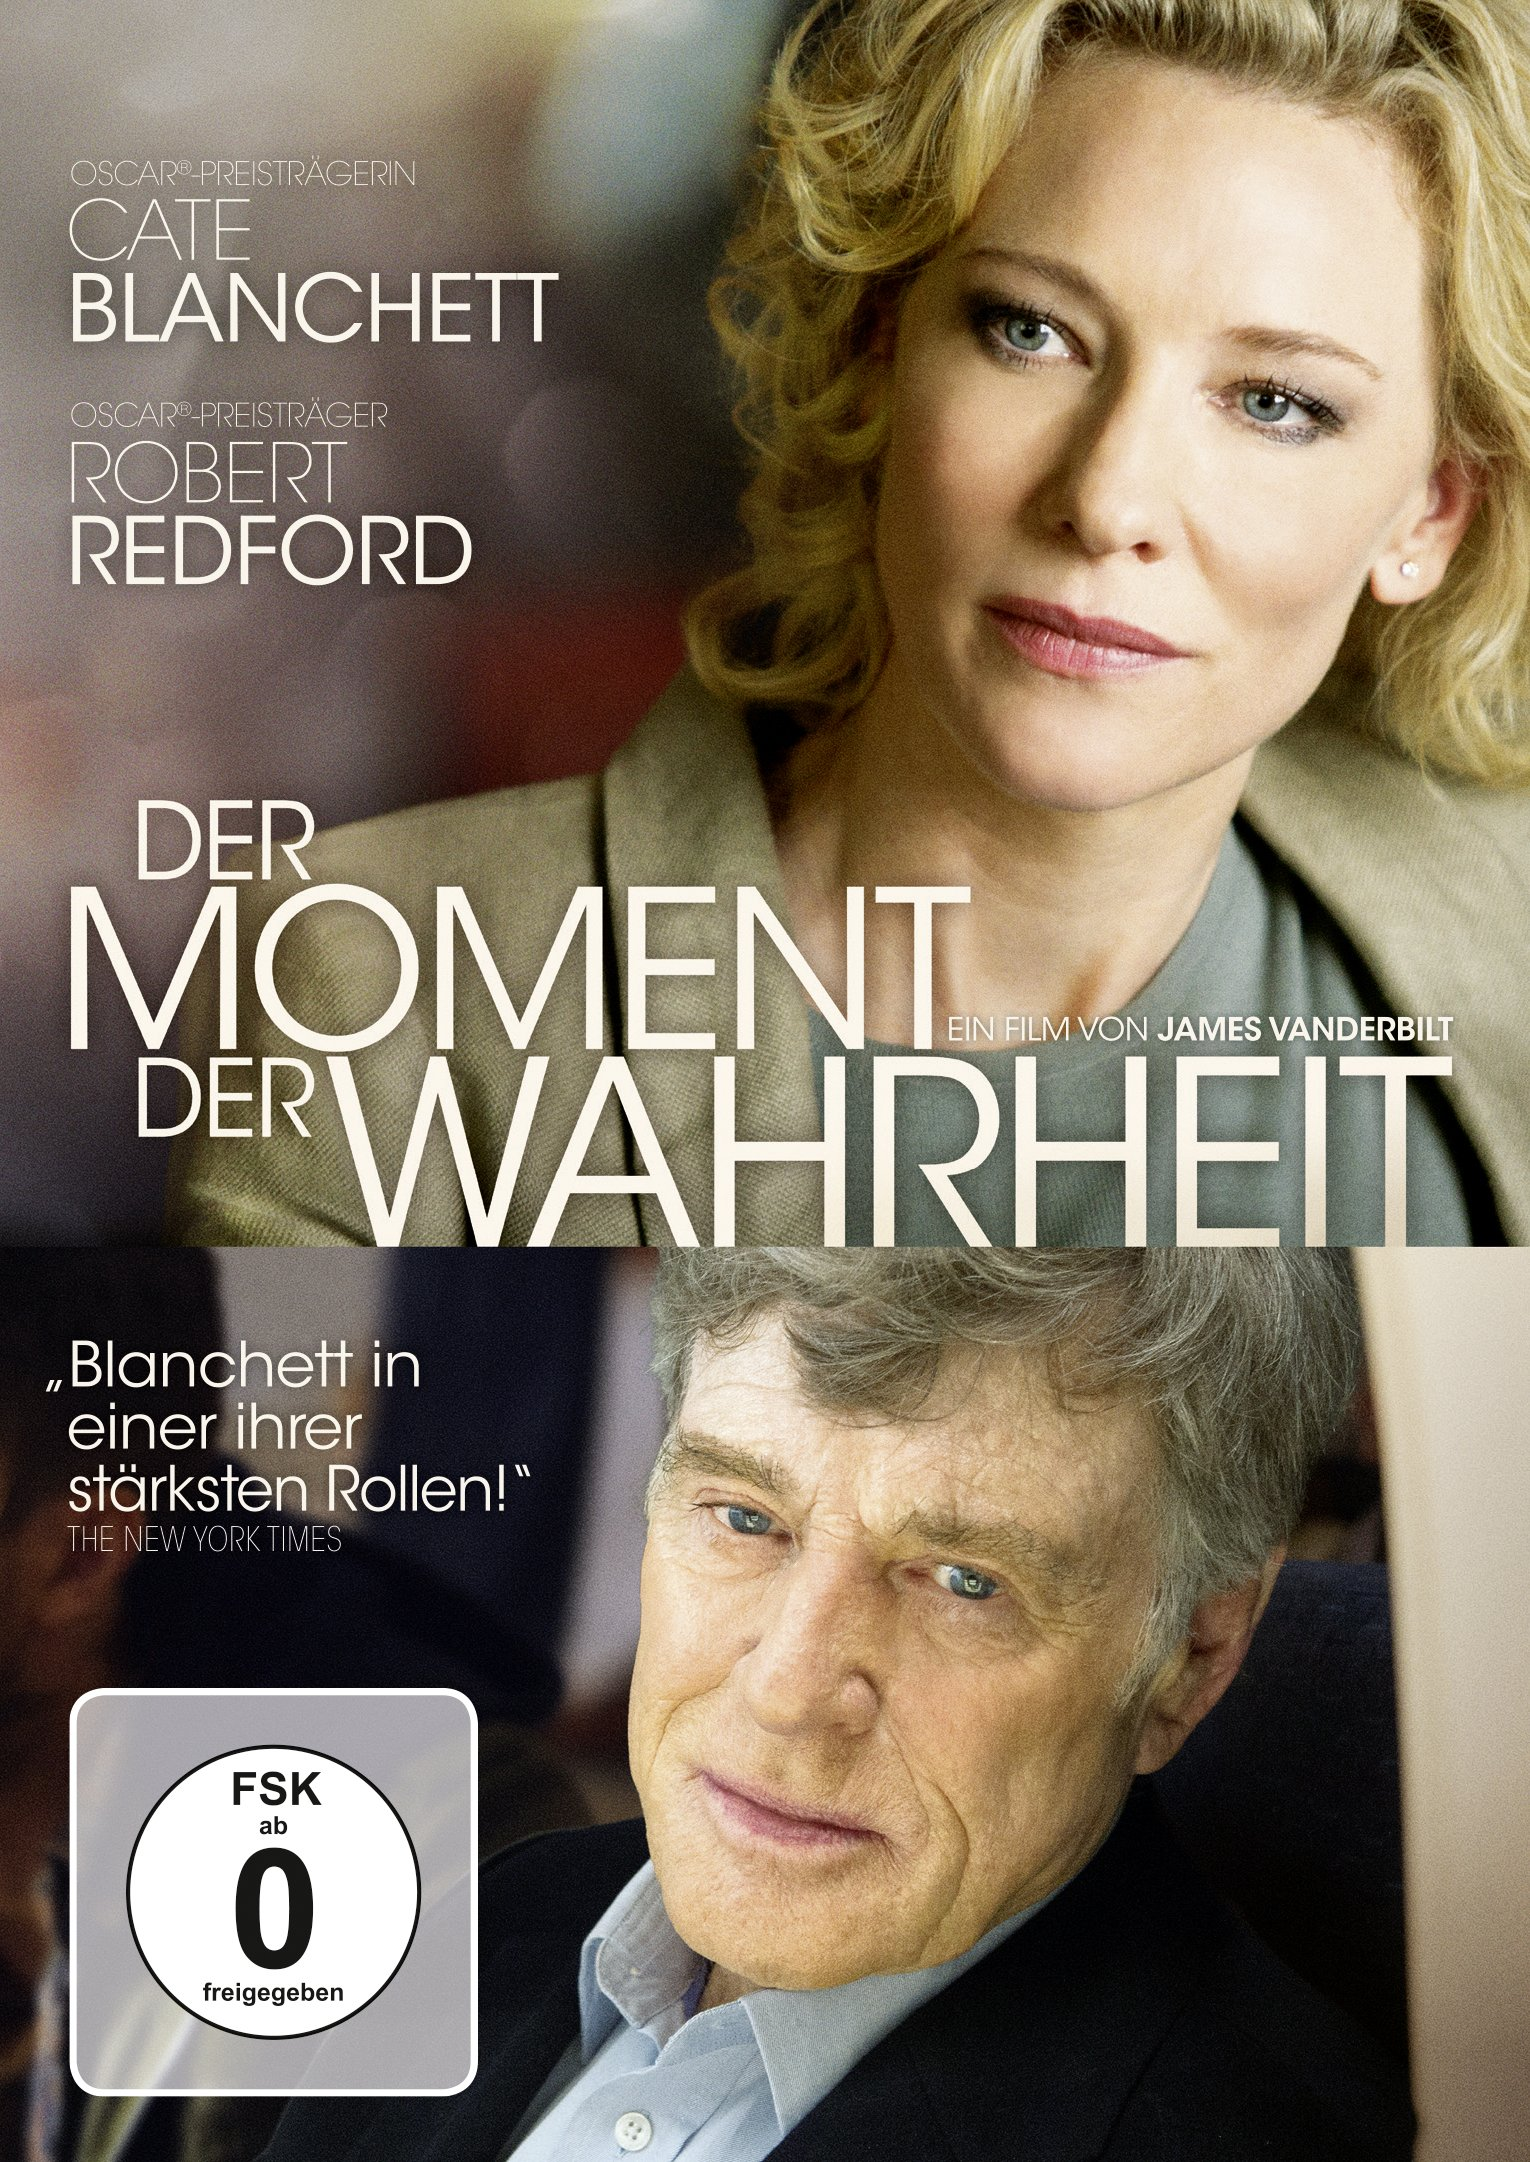 : Der Moment der Wahrheit 2015 German Dl 1080p BluRay x264-Encounters